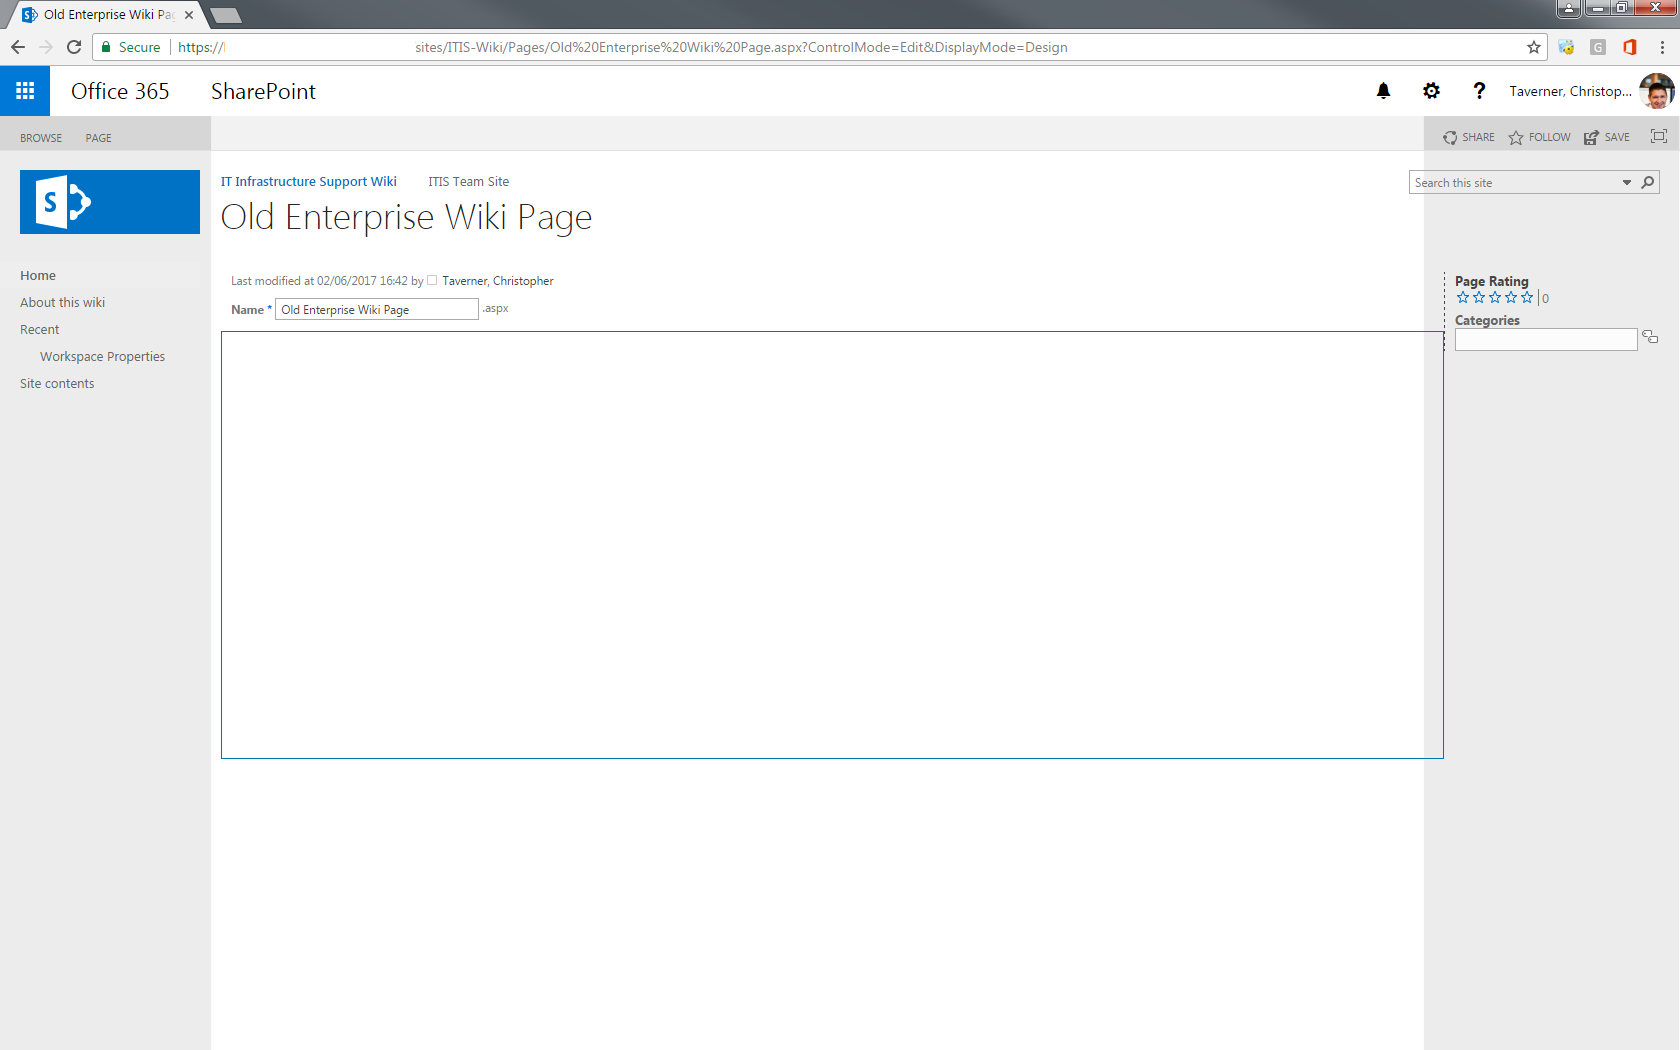 Sharepoint online clone of enterprise wiki page layout mis my new page layout based on an enterprise wiki page layout doesnt look so good 1betcityfo Image collections